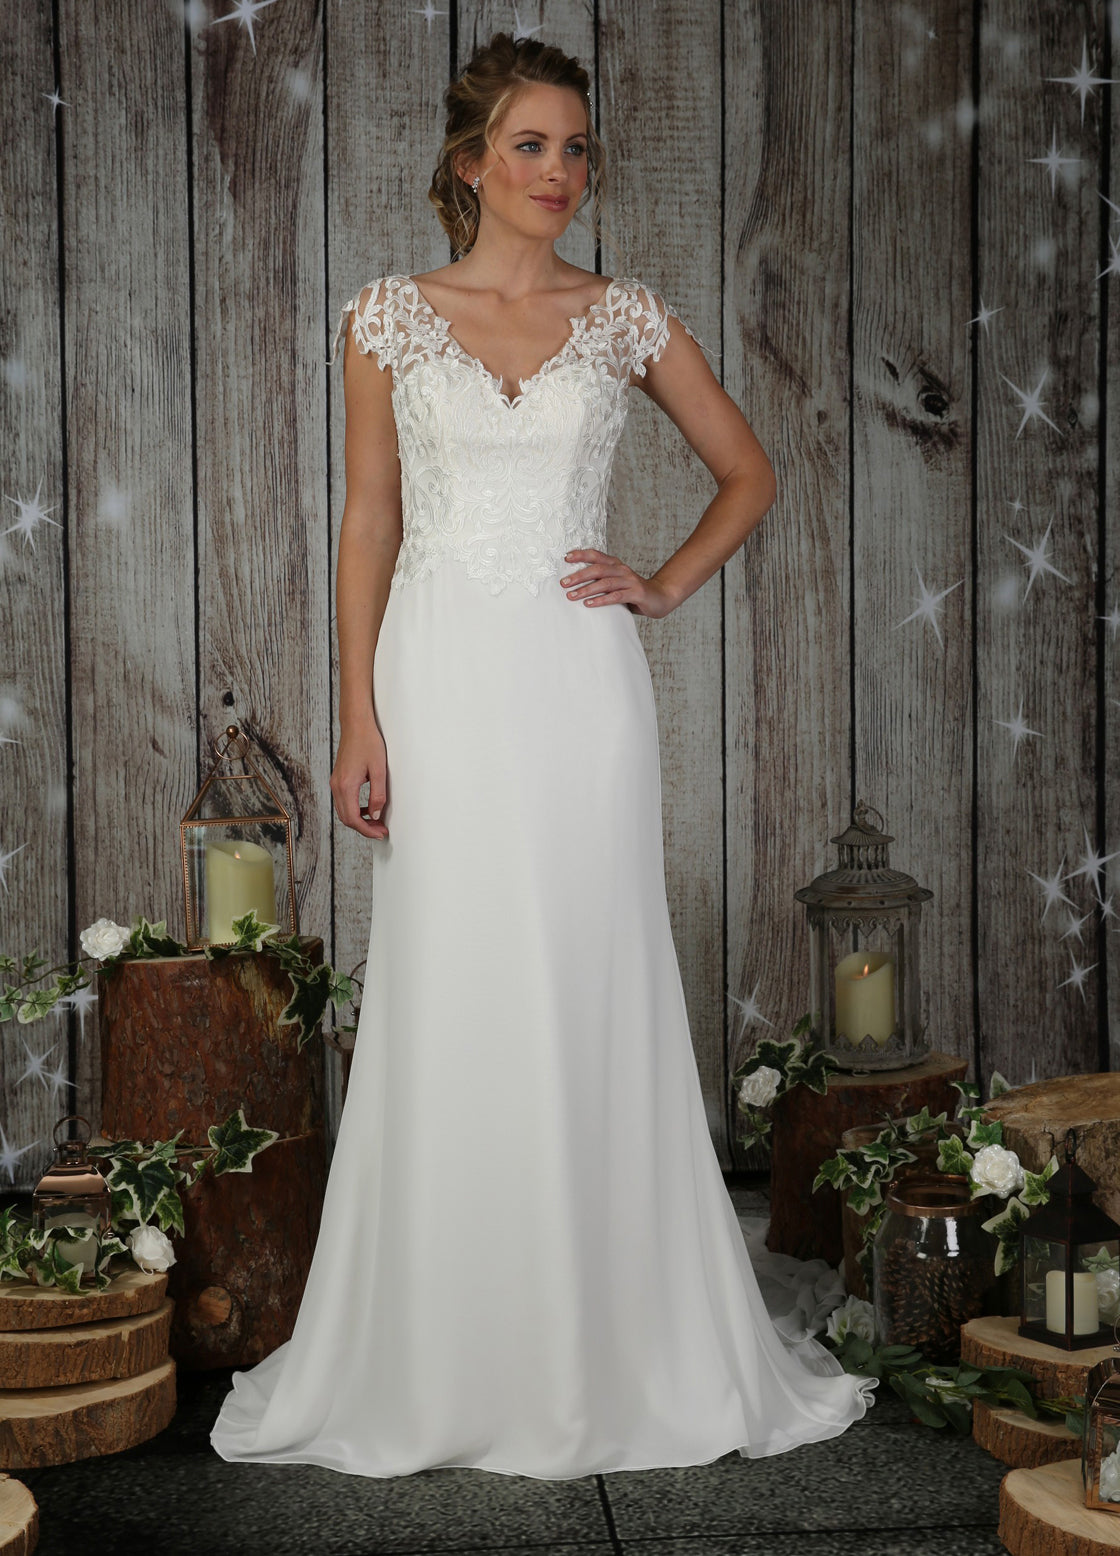 Coral soft lace bodice wedding dress by Richard Designs